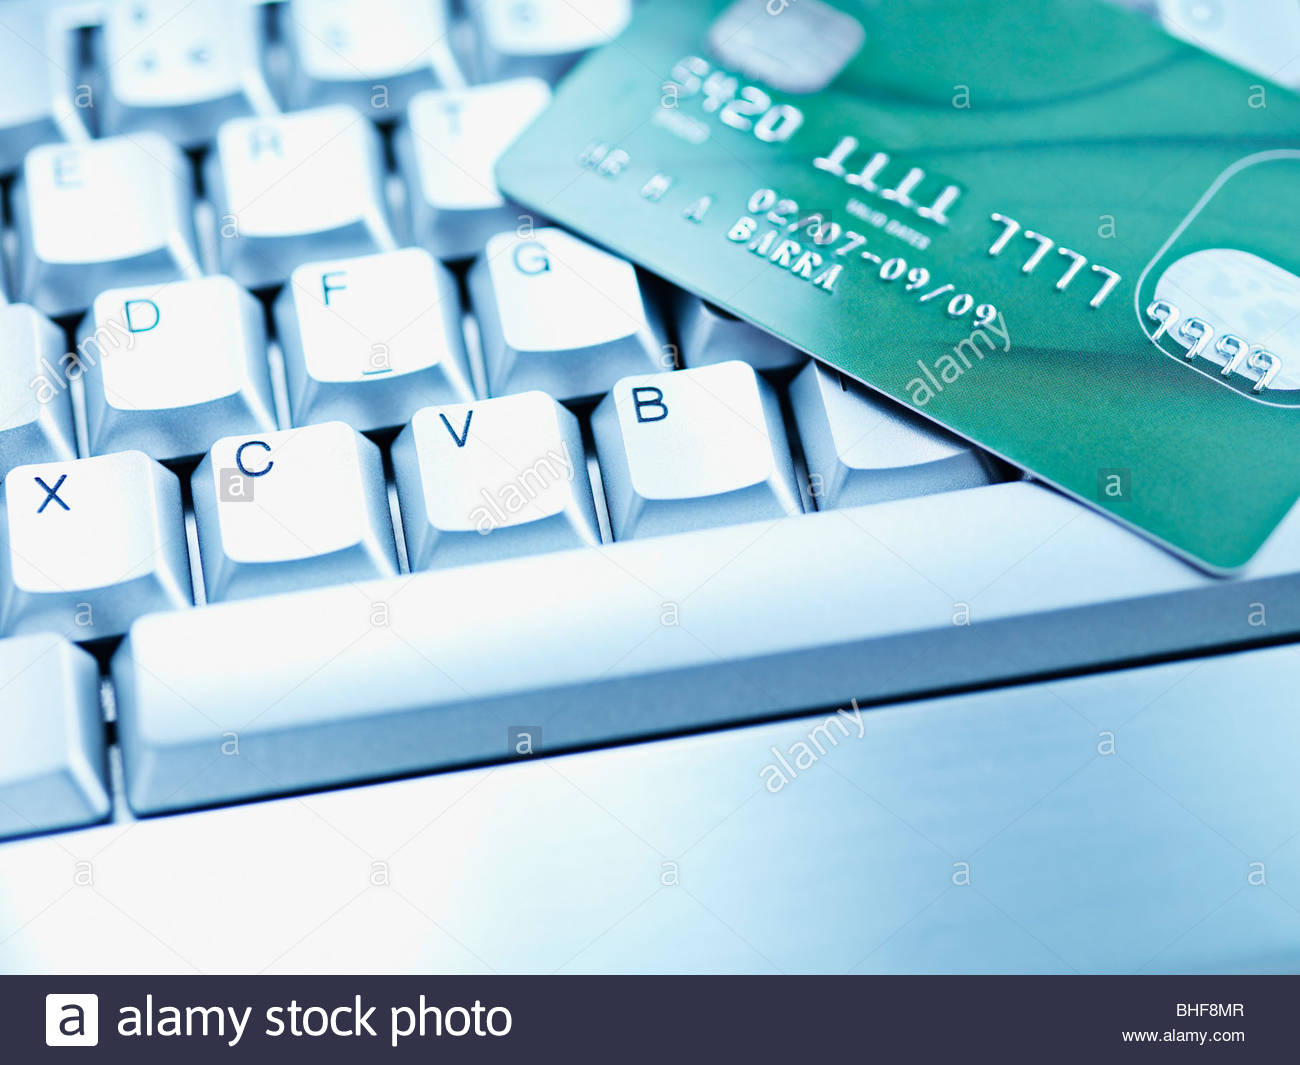 Computer keyboard and credit card - Stock Image